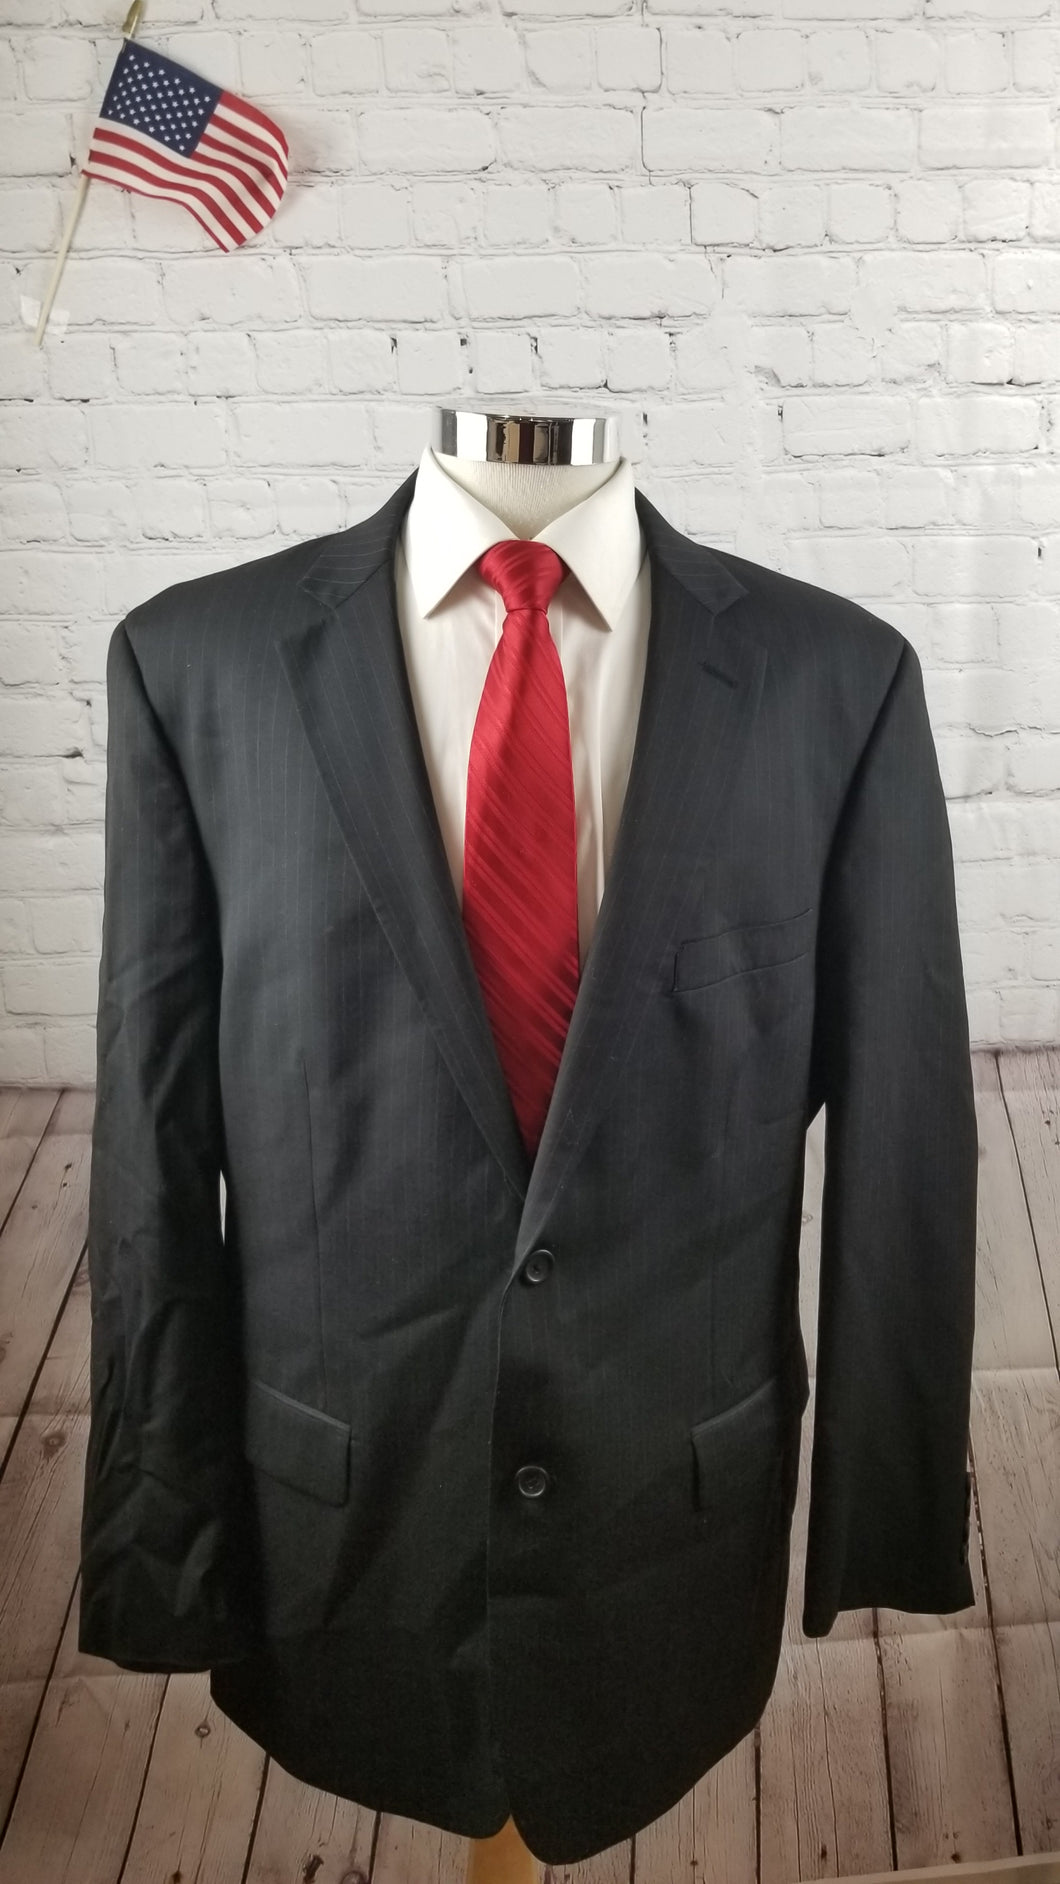 Pronto Uono Men's Black Stripe Wool Suit 46L Pants 34x32 $595 - SUIT CHARITY OUTLET